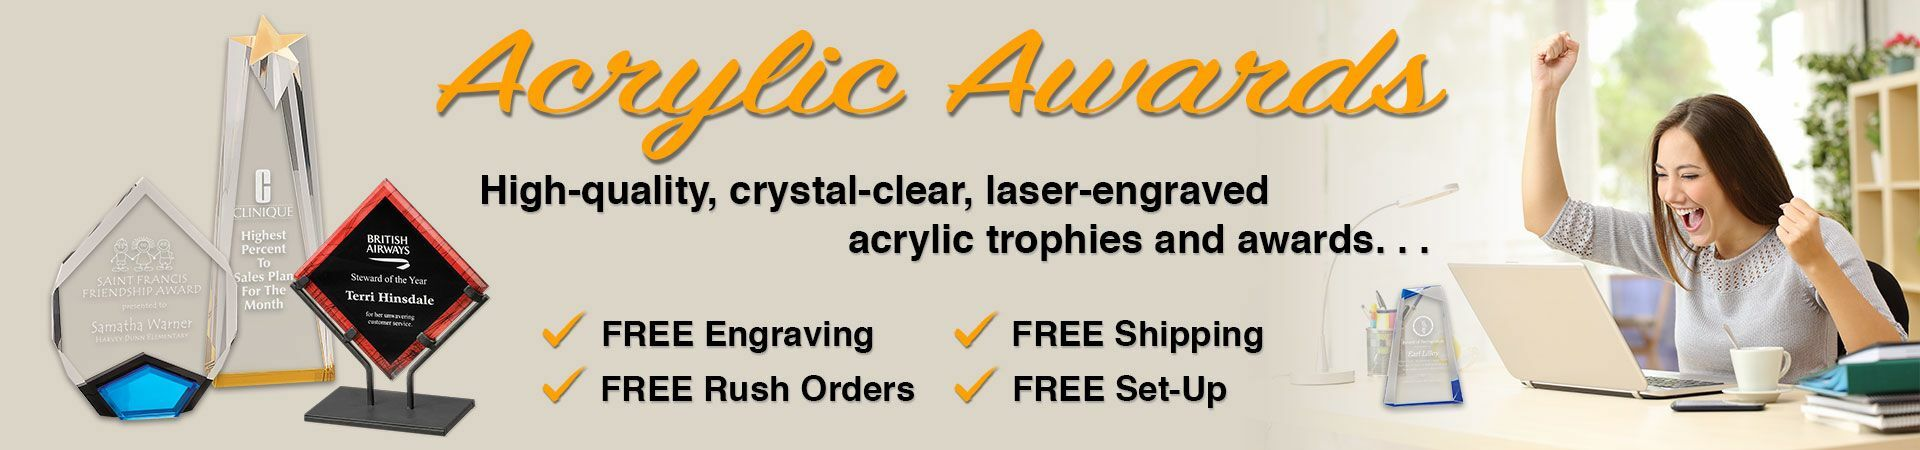 Acrylic Awards slider with image of acrylic awards and office employee celebrating her achievements